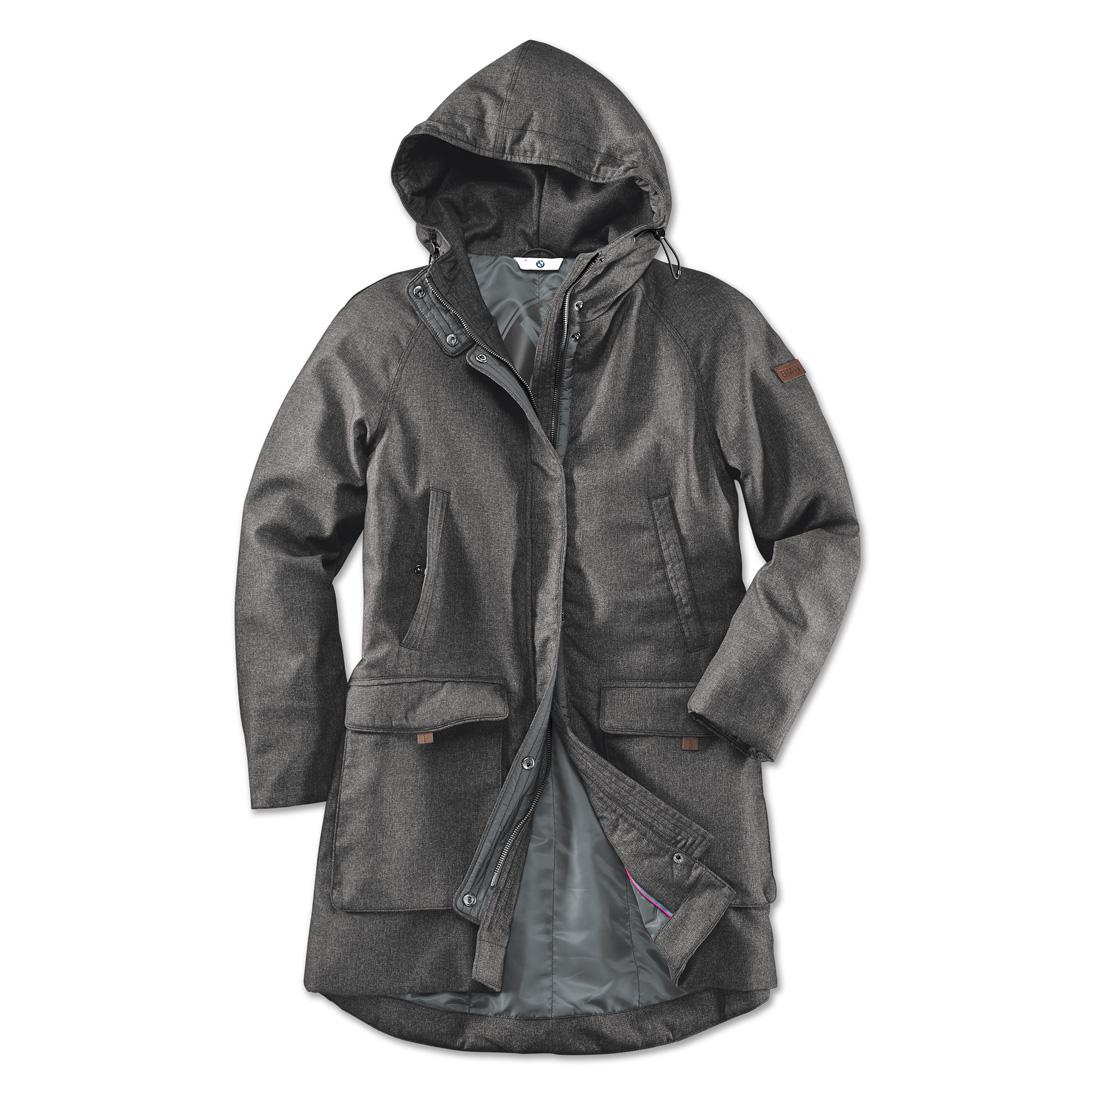 BMW Jacket Women's Grey